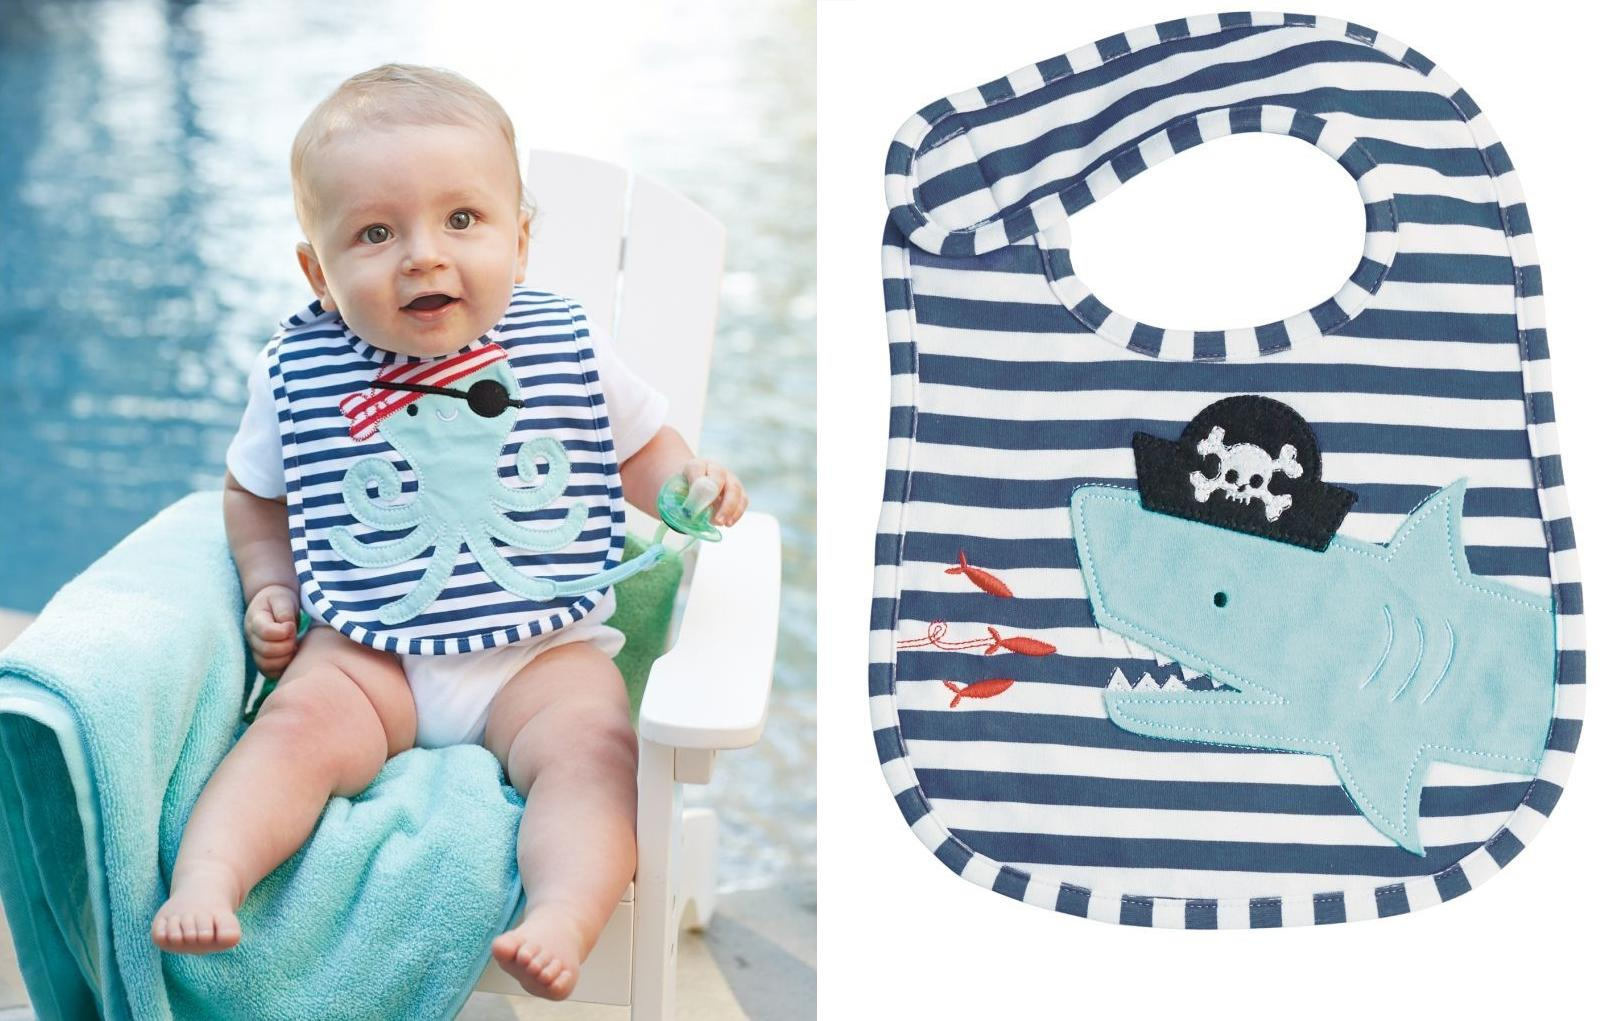 1a5473238 Mud Pie E7 Boy Baby Applique Feeding Bib – Pirate Shark & Octopus 1552280